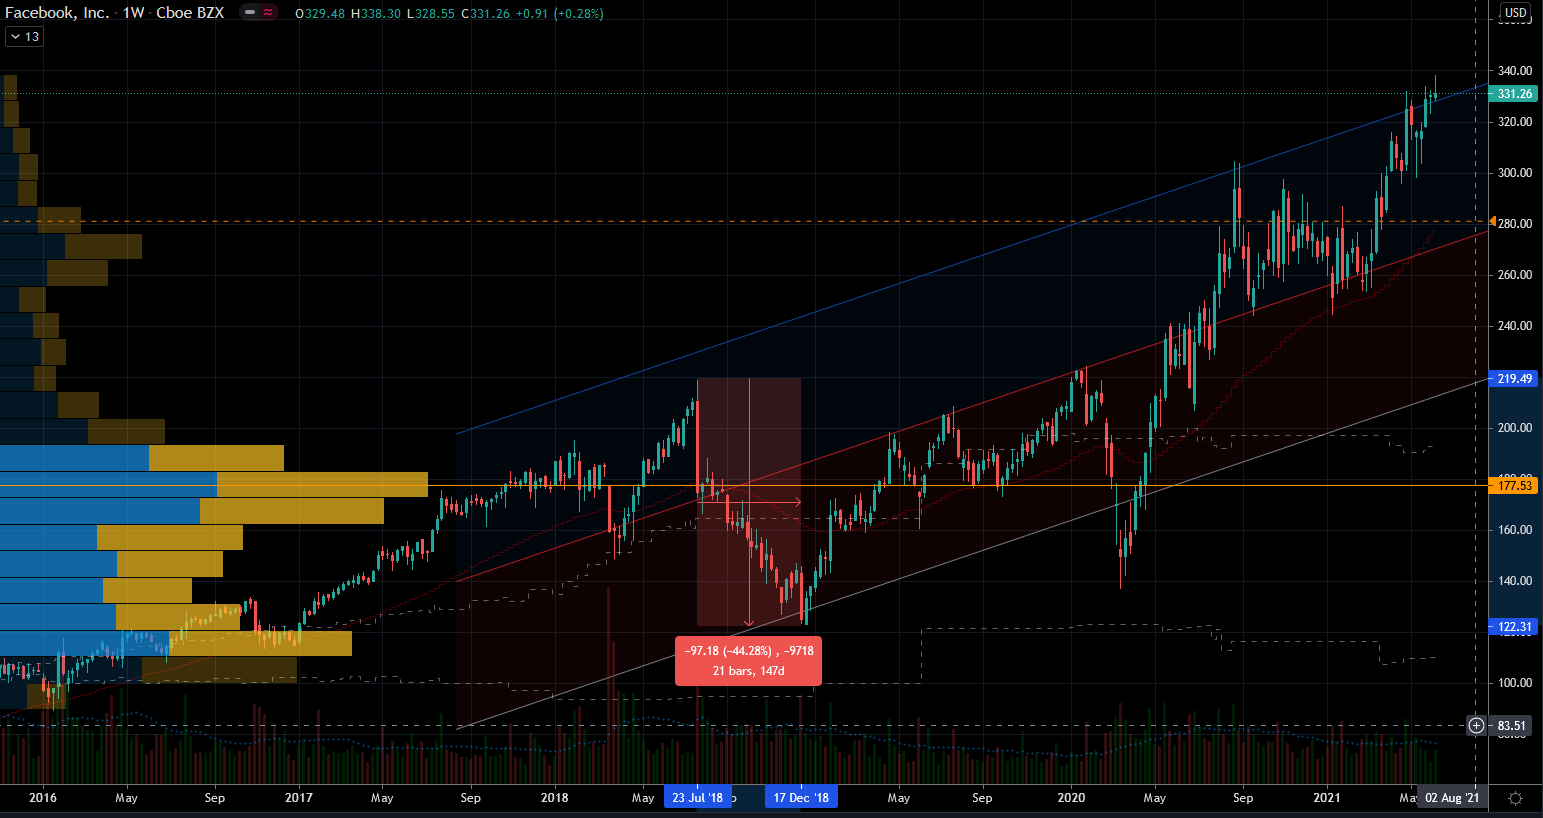 Social Media stocks: Facebook (FB) Stock Chart Showing Potentially Better Entry Points